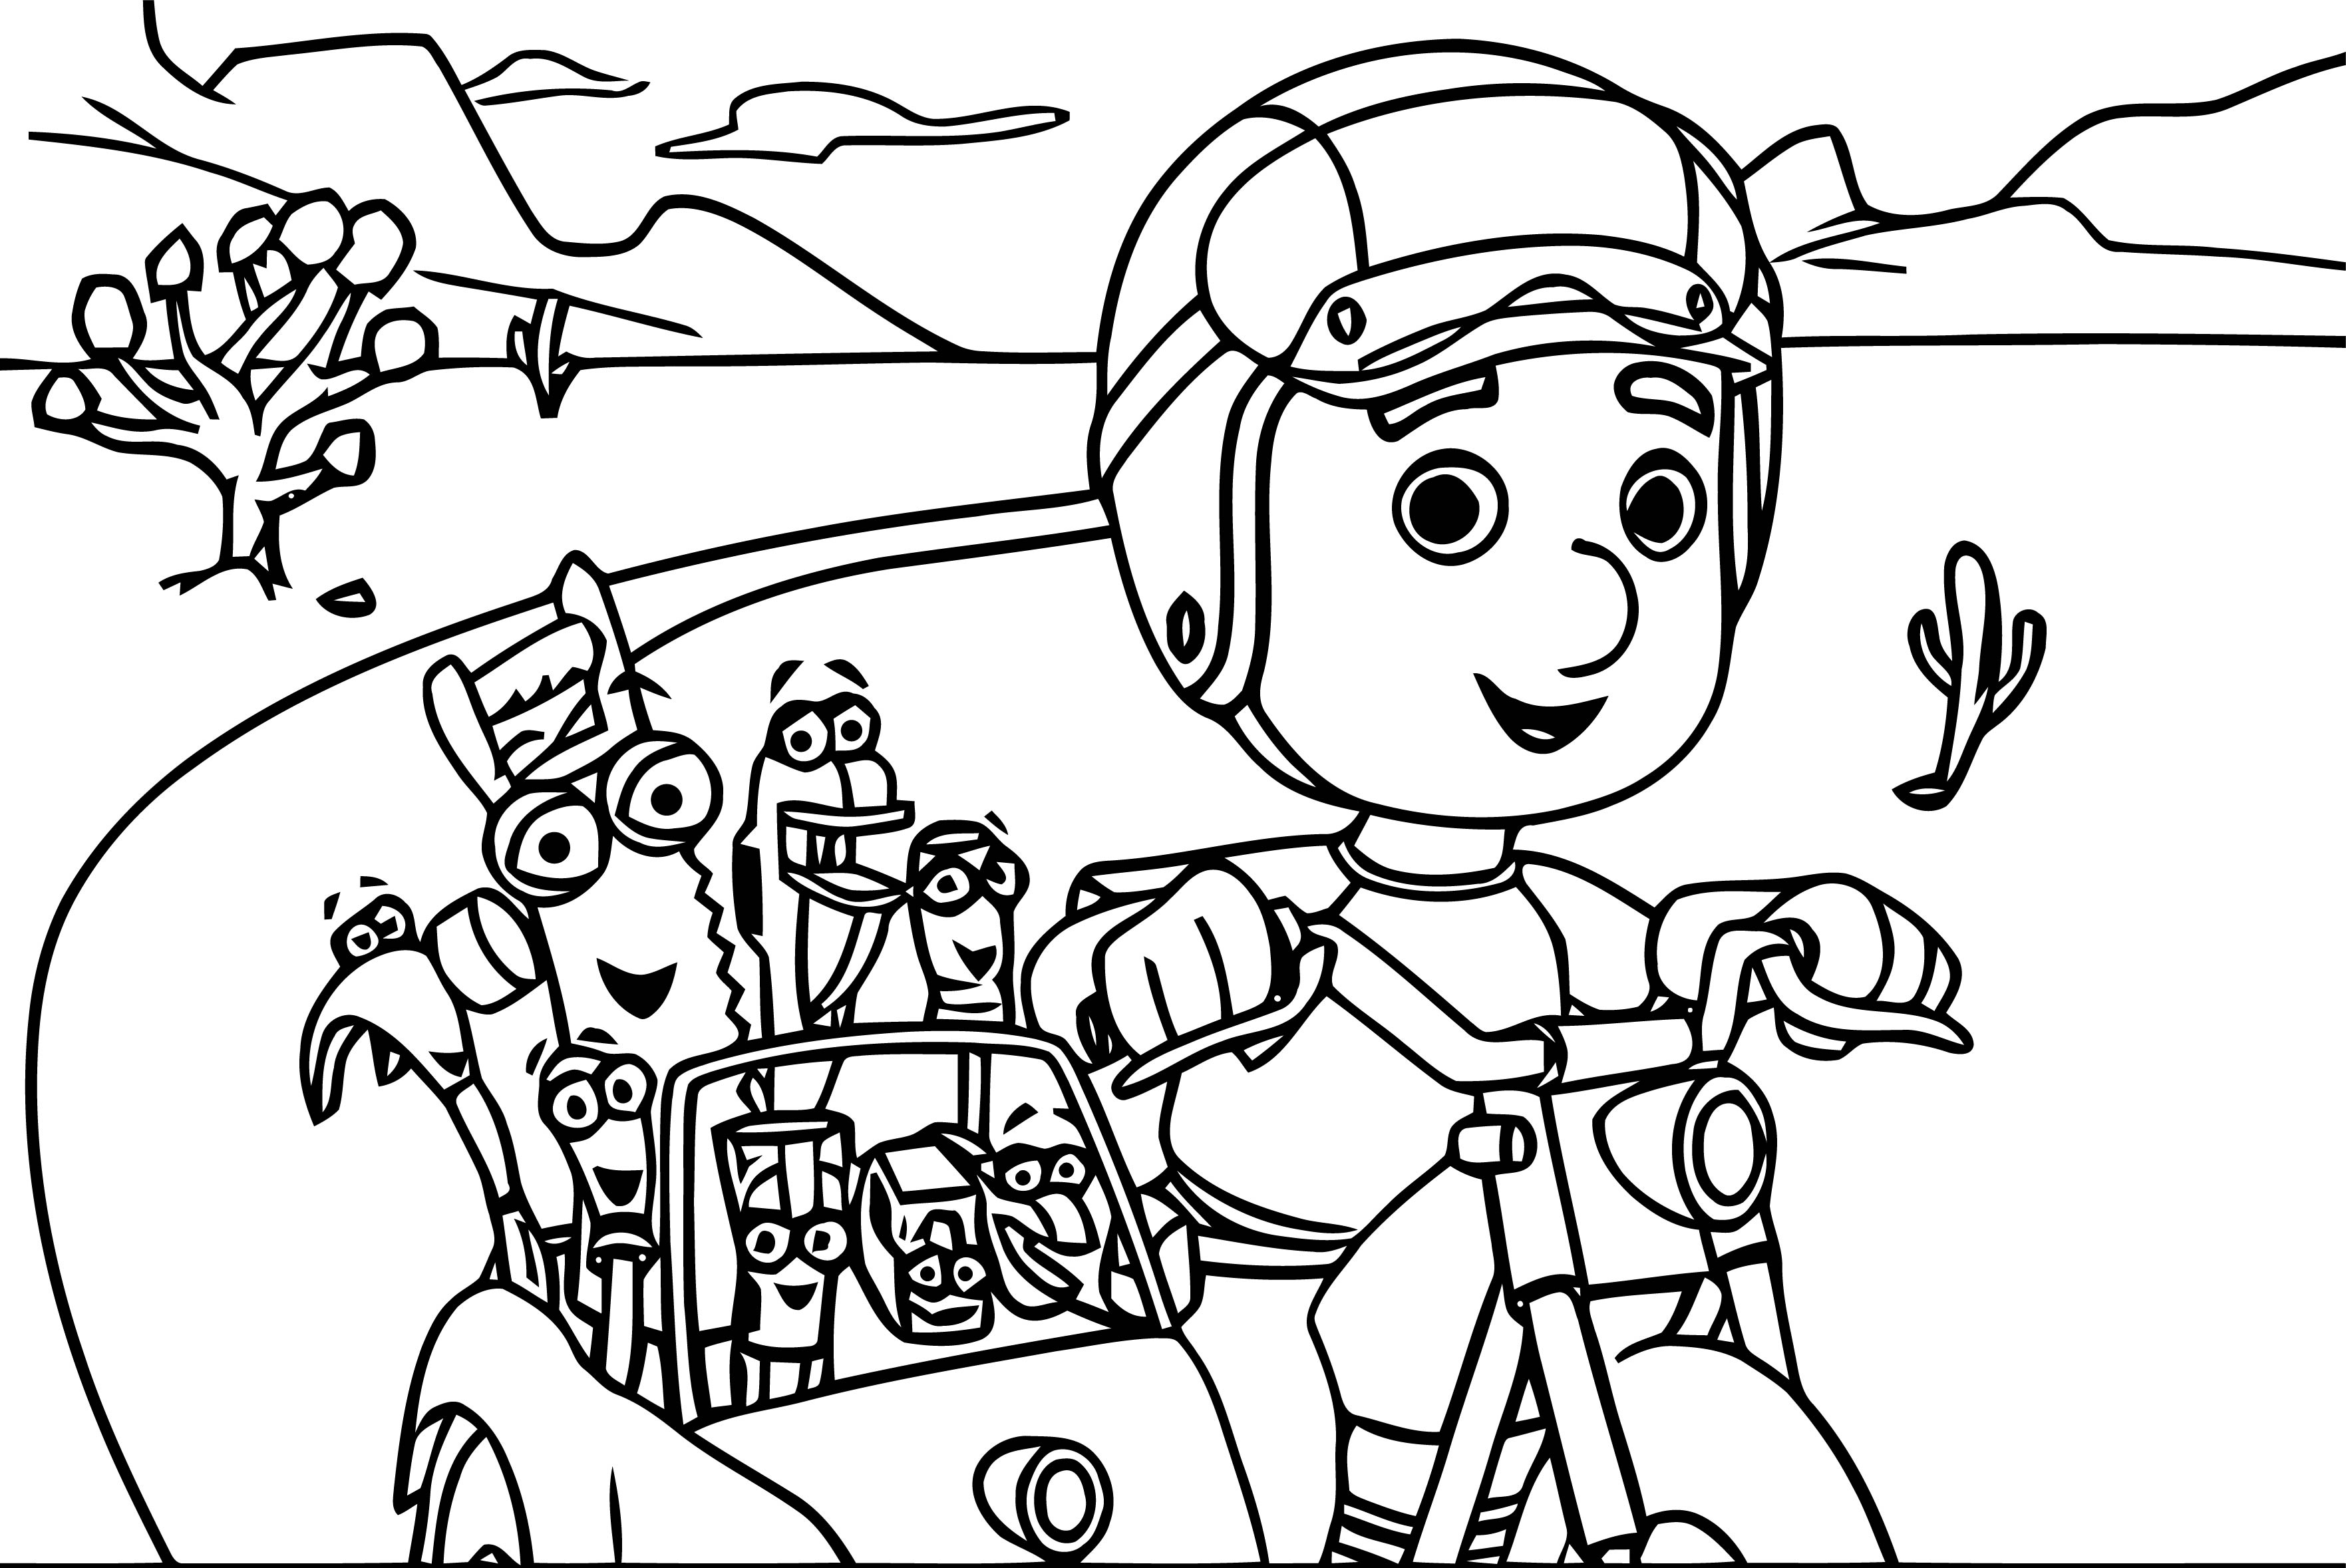 Handy Manny Motorcycle Adventure E Coloring Page